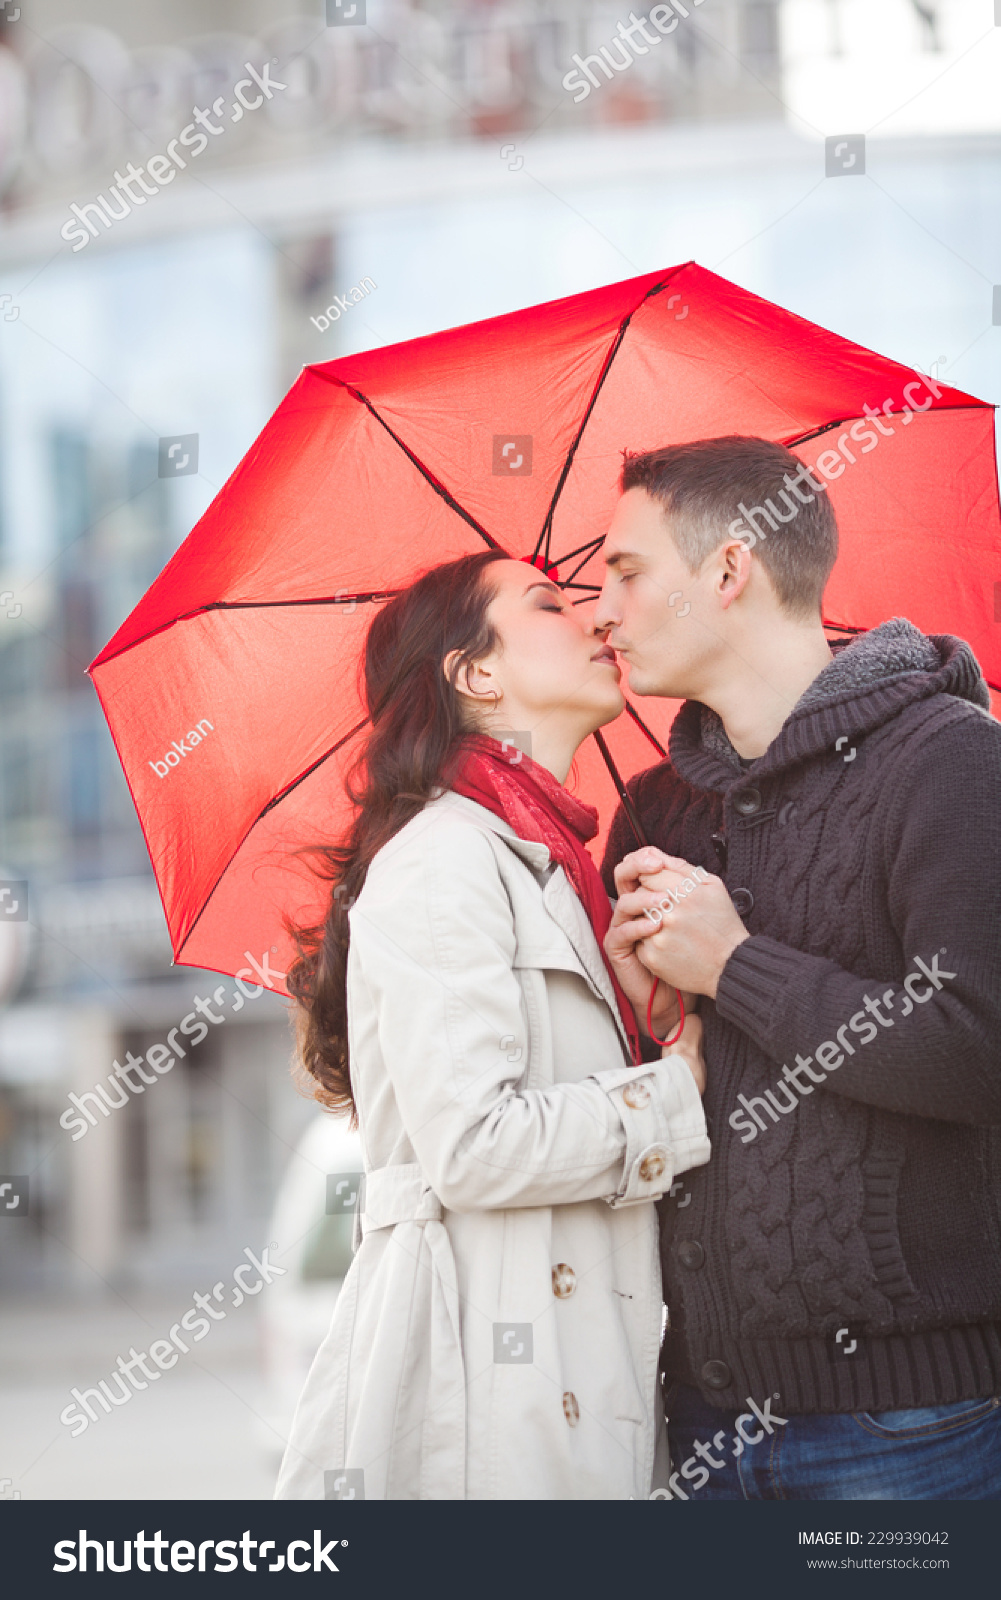 Umbrella with Red Lips Kissing Loves